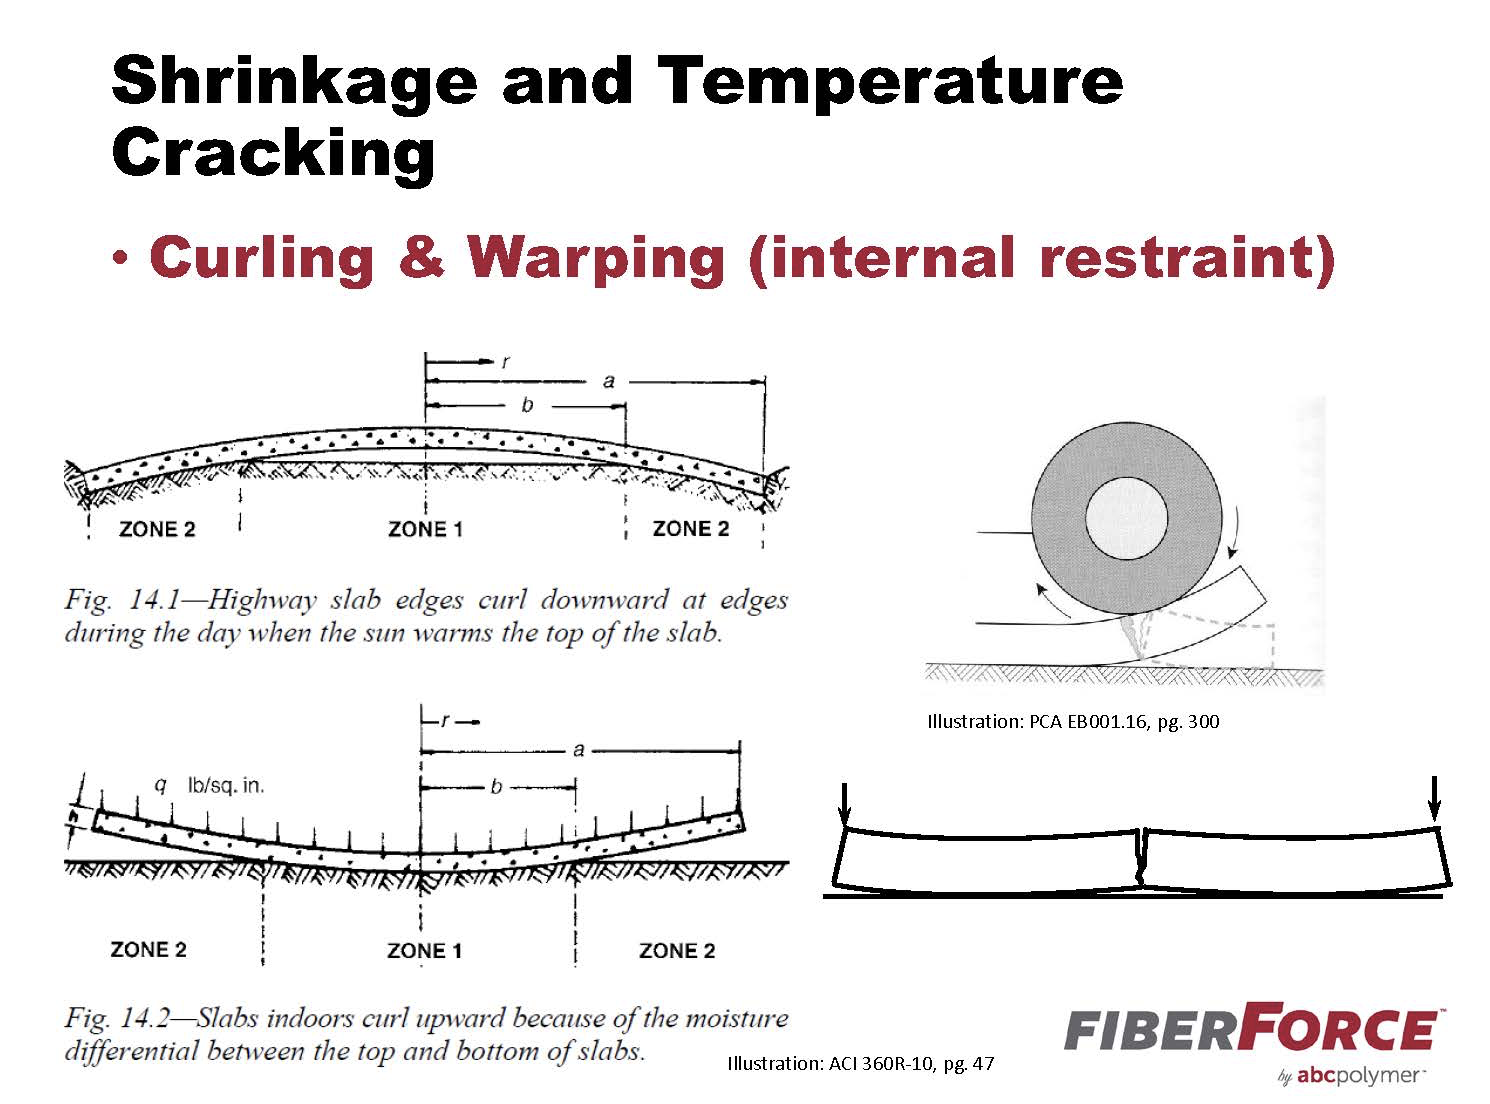 Pavement Shrinking, Curling, and Warping